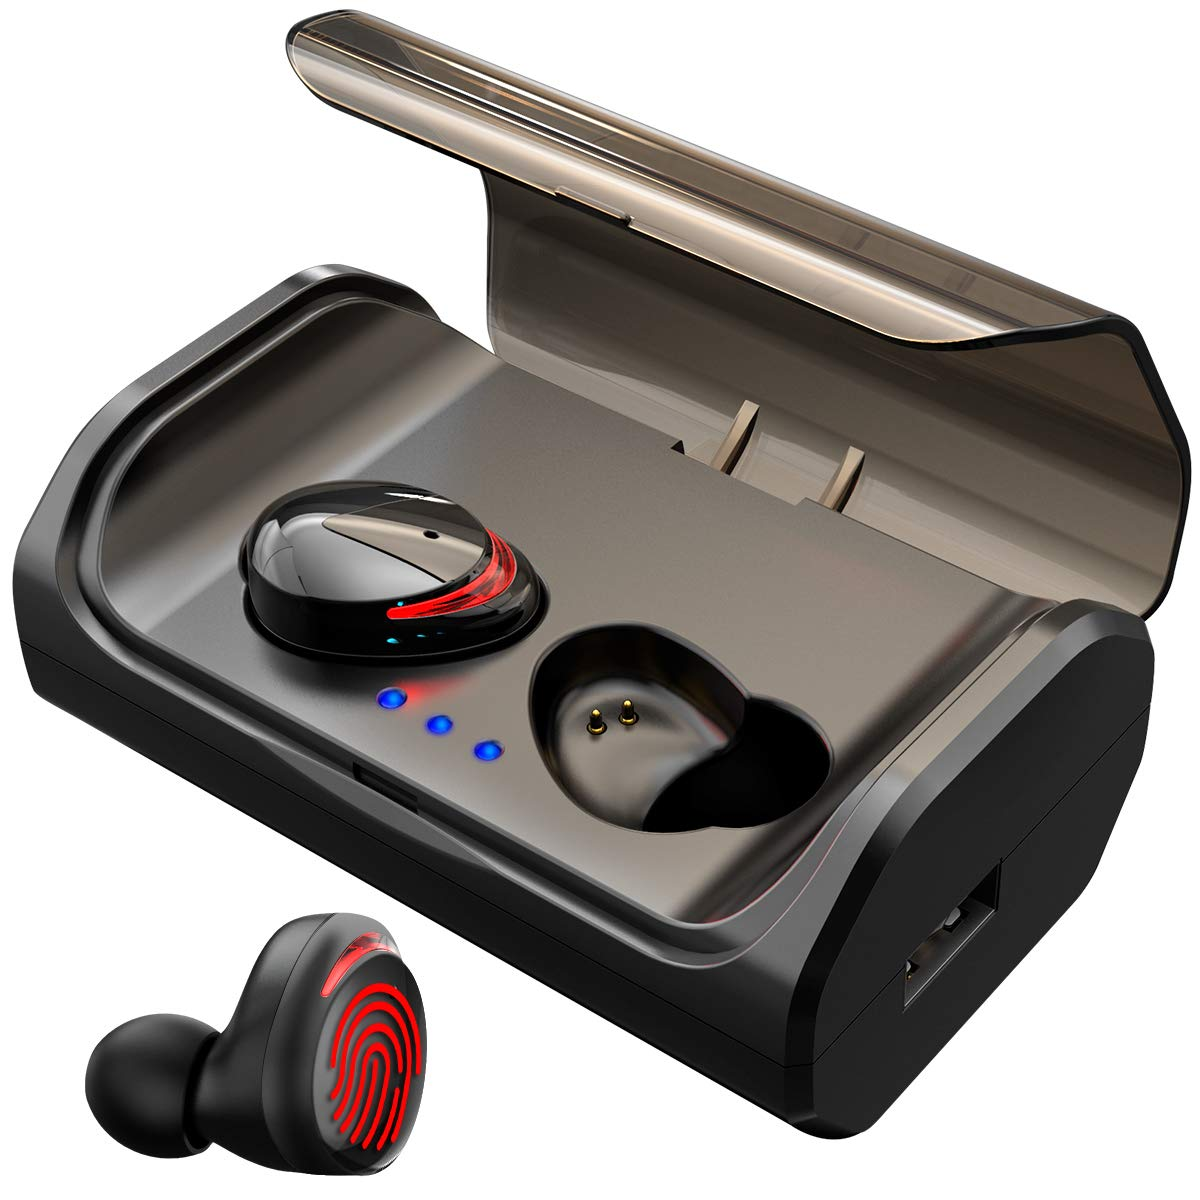 Auricolari Bluetooth Amazon